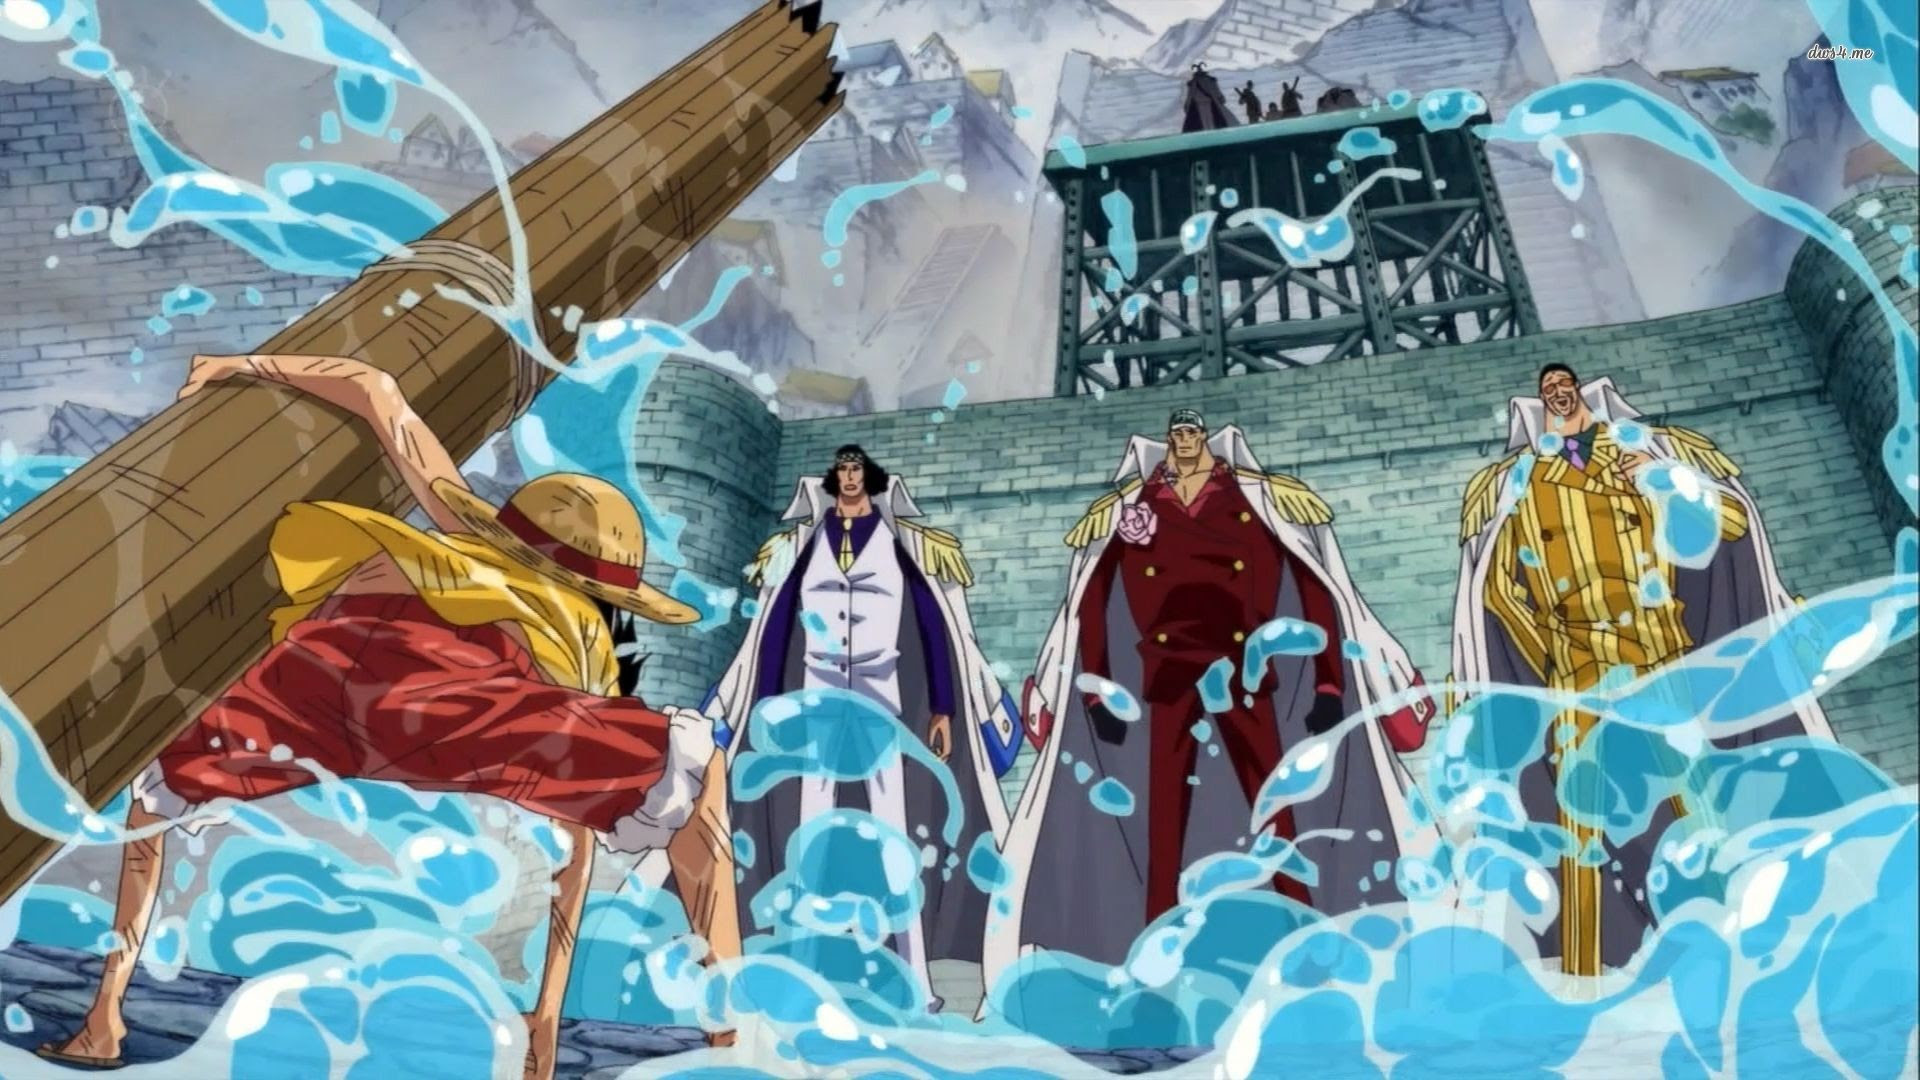 One Piece Wallpaper 1920x1080 (78+ images)